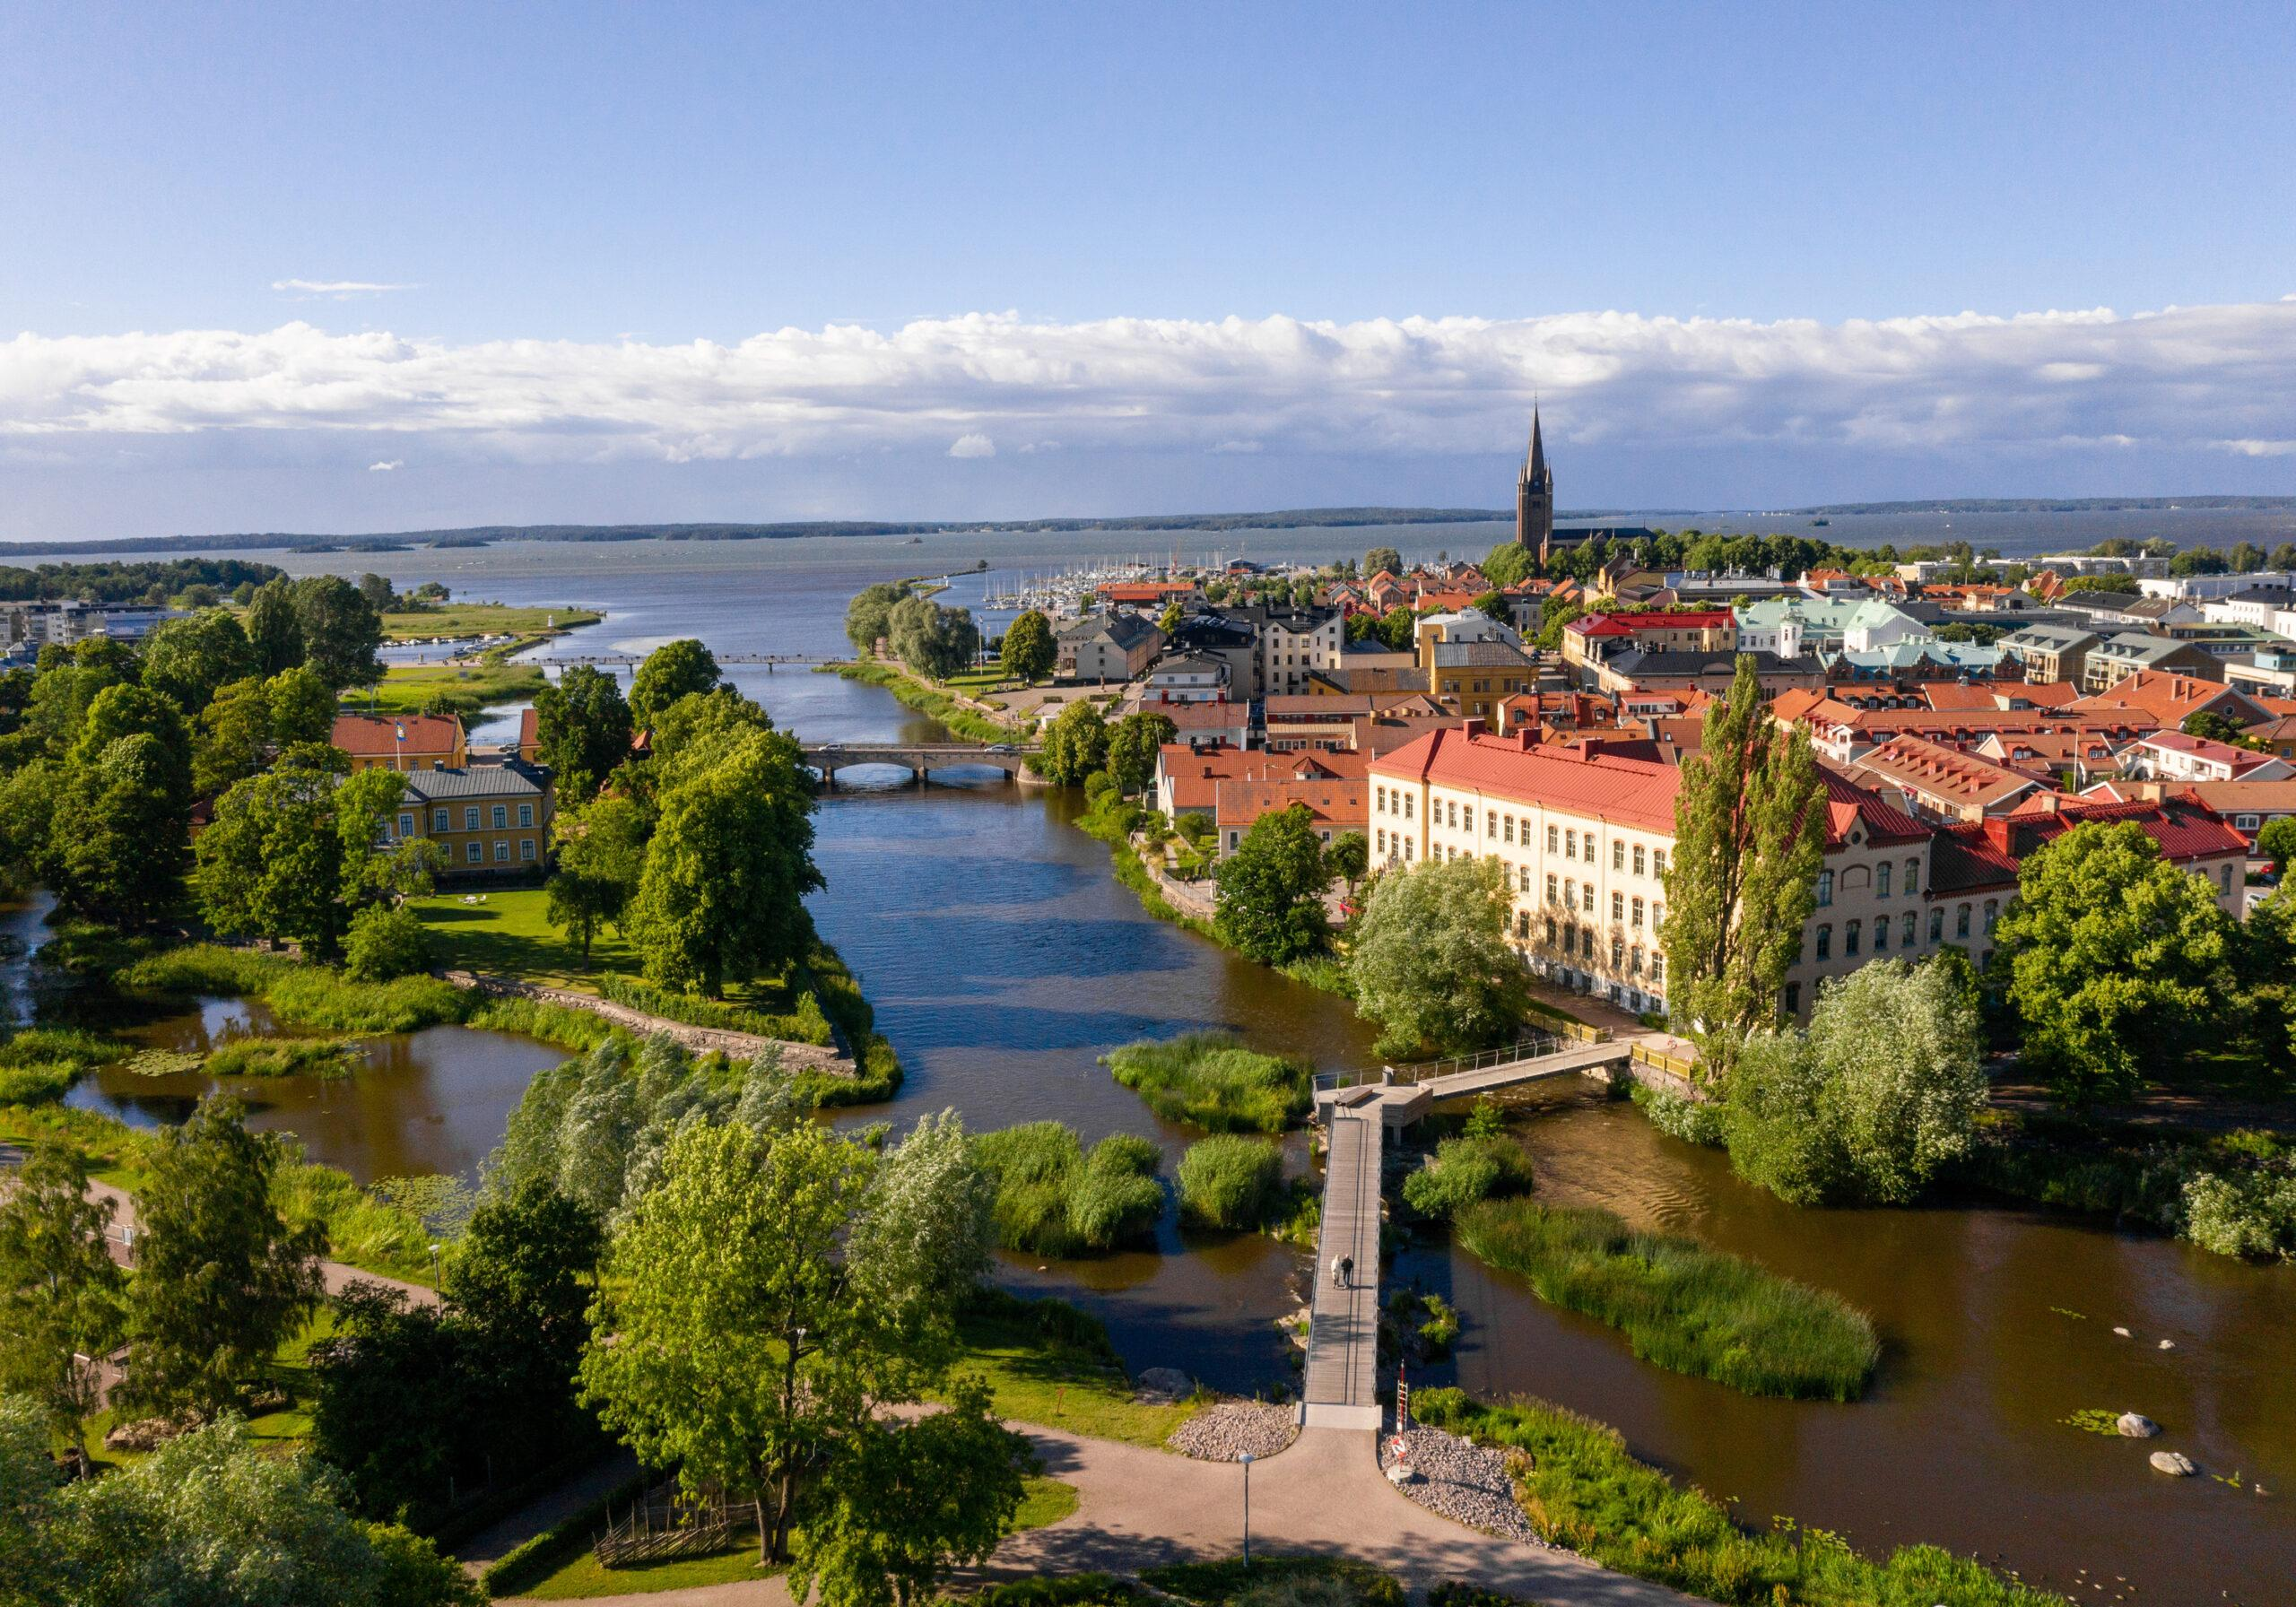 Aerial view of the town of Mariestad.